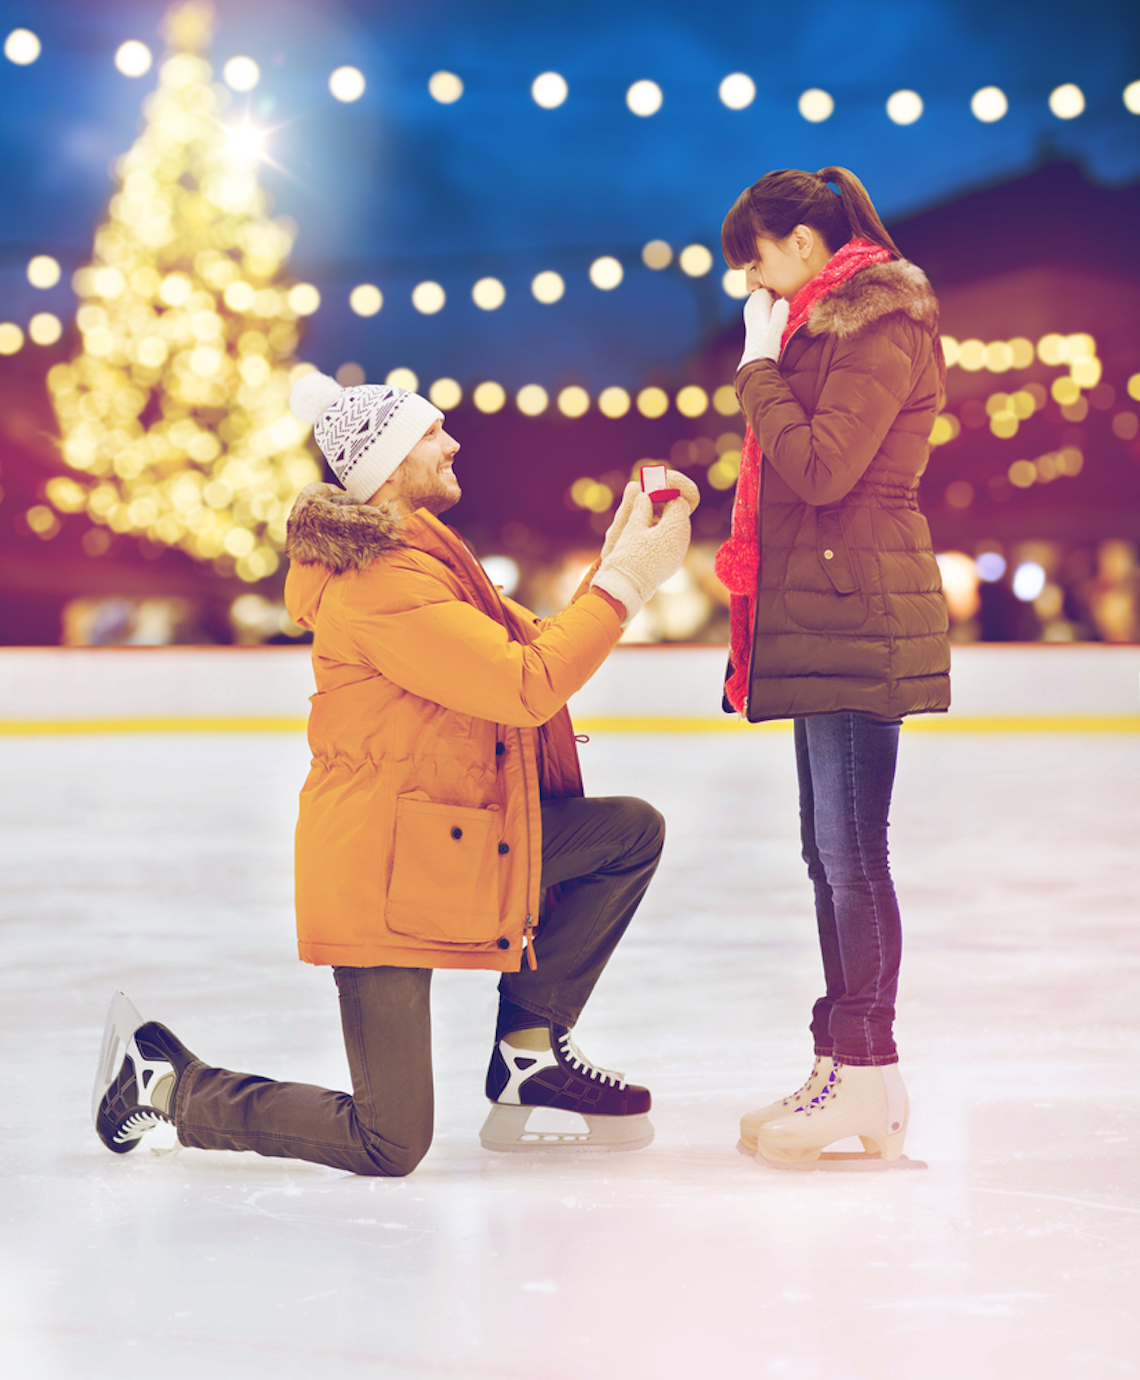 how to write a wedding proposal